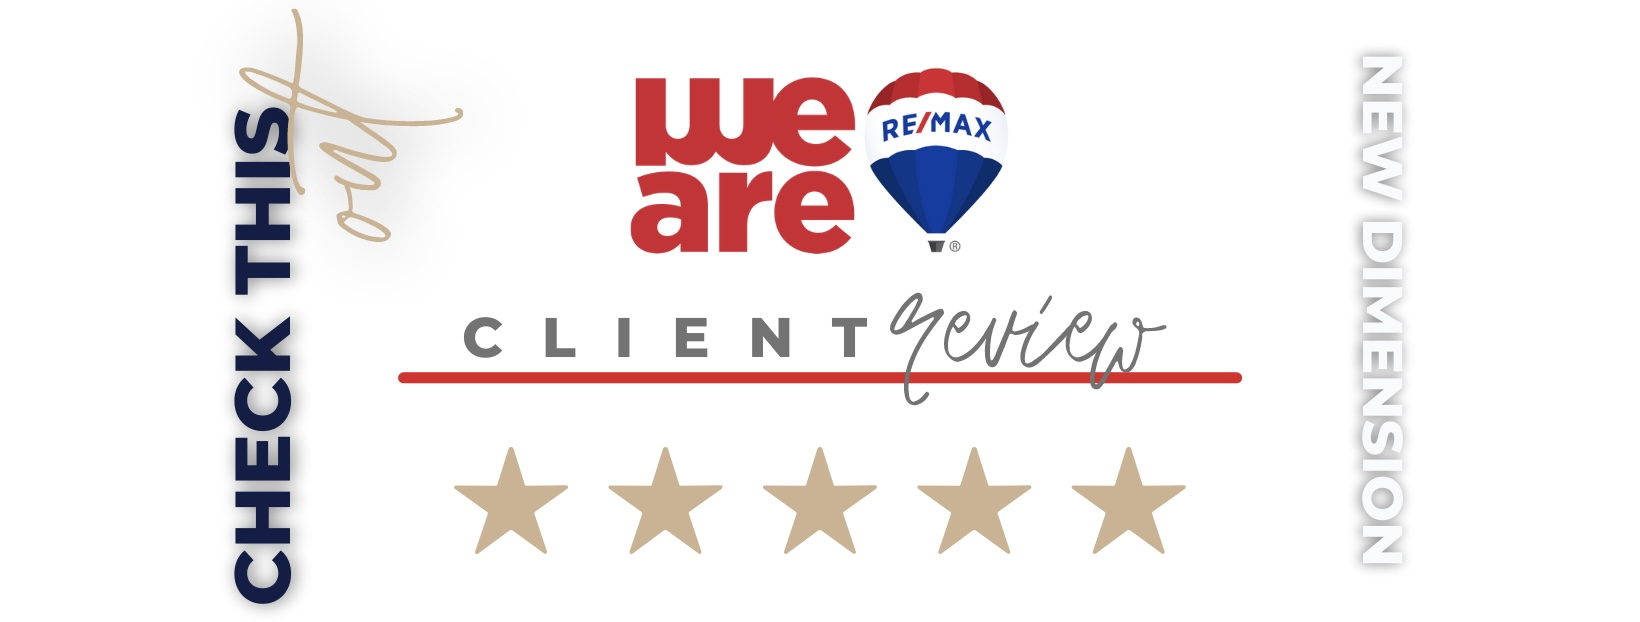 REMAX New Dimension reviews | Real Estate Services at 1820 E First St - Santa Ana CA